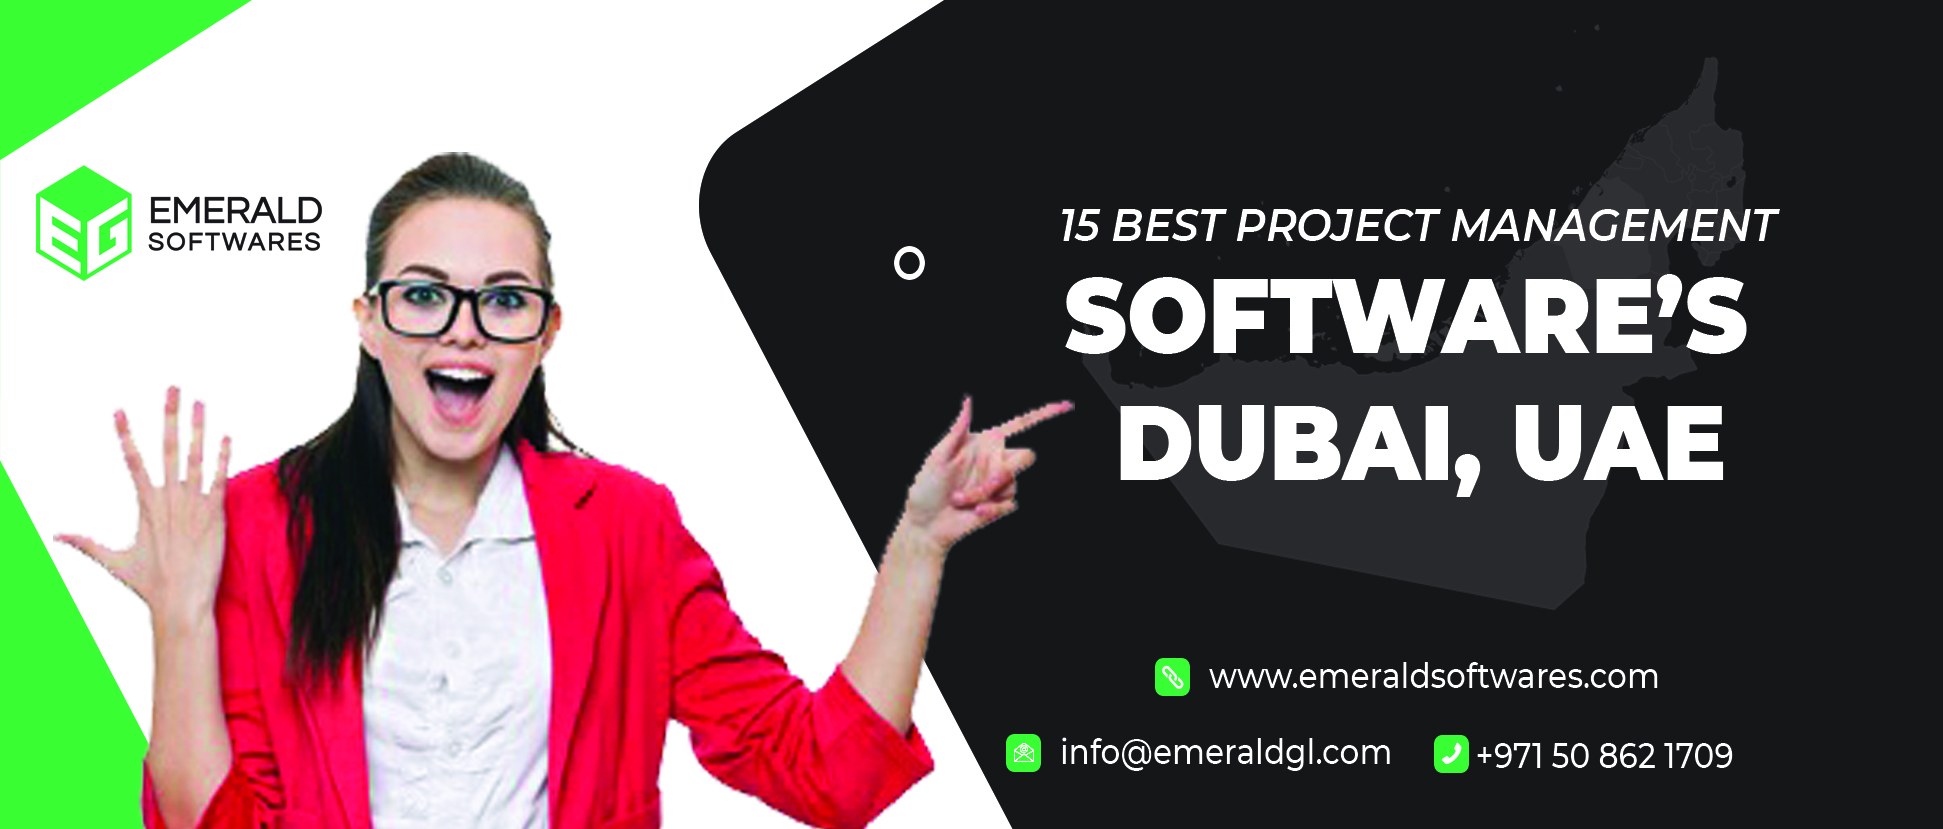 Top 15 Project Management Softwares in Dubai, UAE